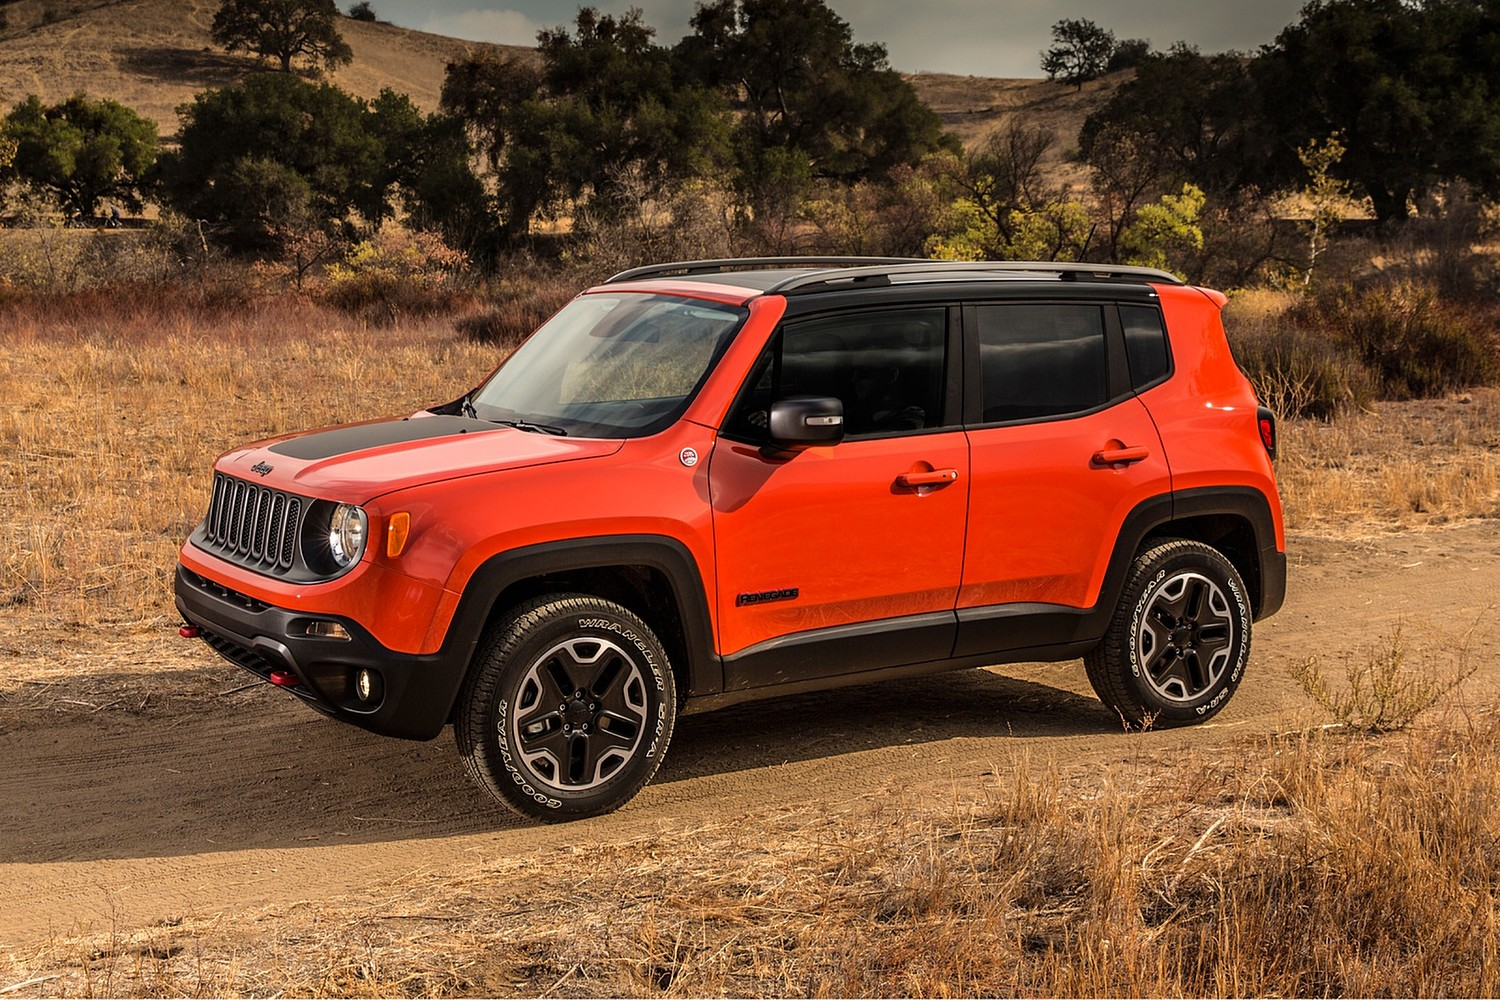 2017 Jeep Renegade Trailhawk 4dr SUV Exterior Shown